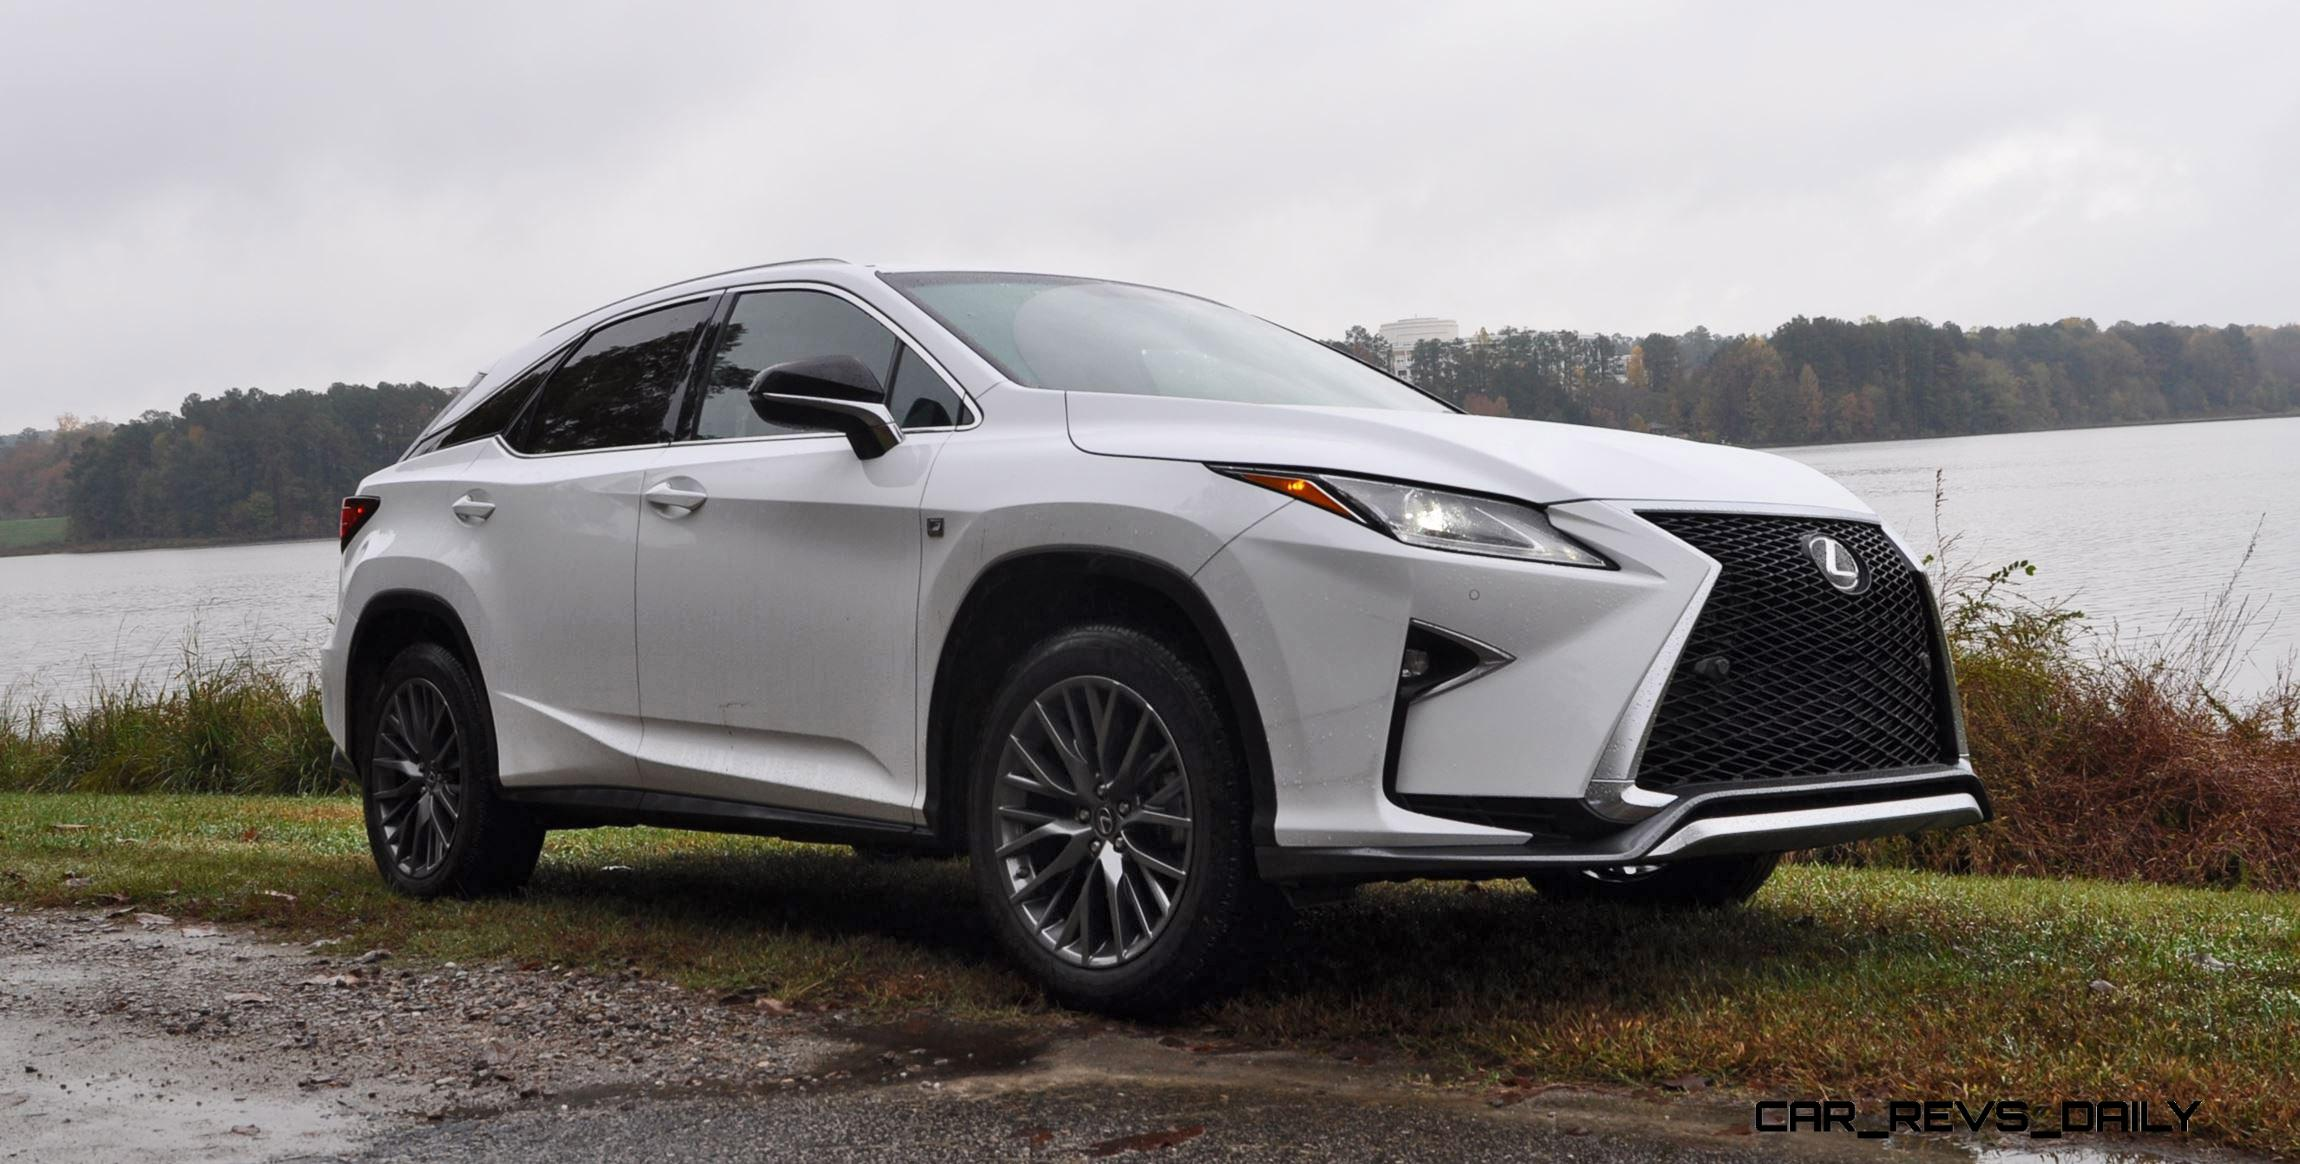 2016 lexus rx reviews roundup 150 all new rx350 f. Black Bedroom Furniture Sets. Home Design Ideas